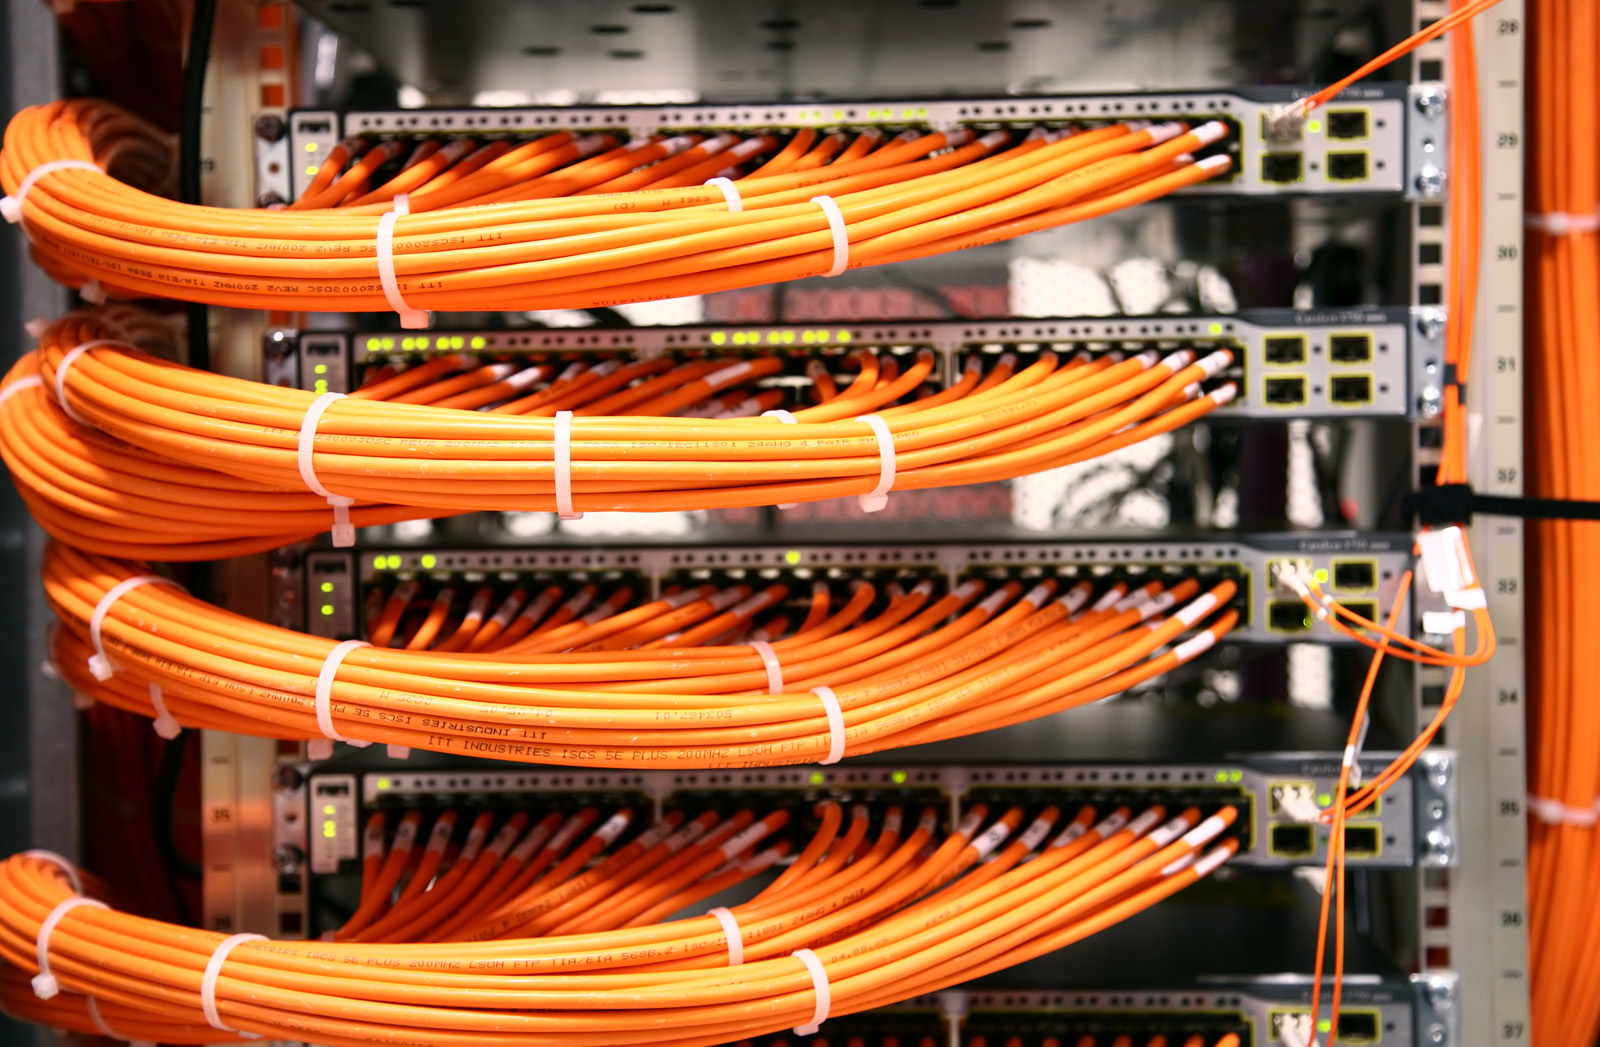 Harlan Kentucky Trusted Voice & Data Network Cabling Provider